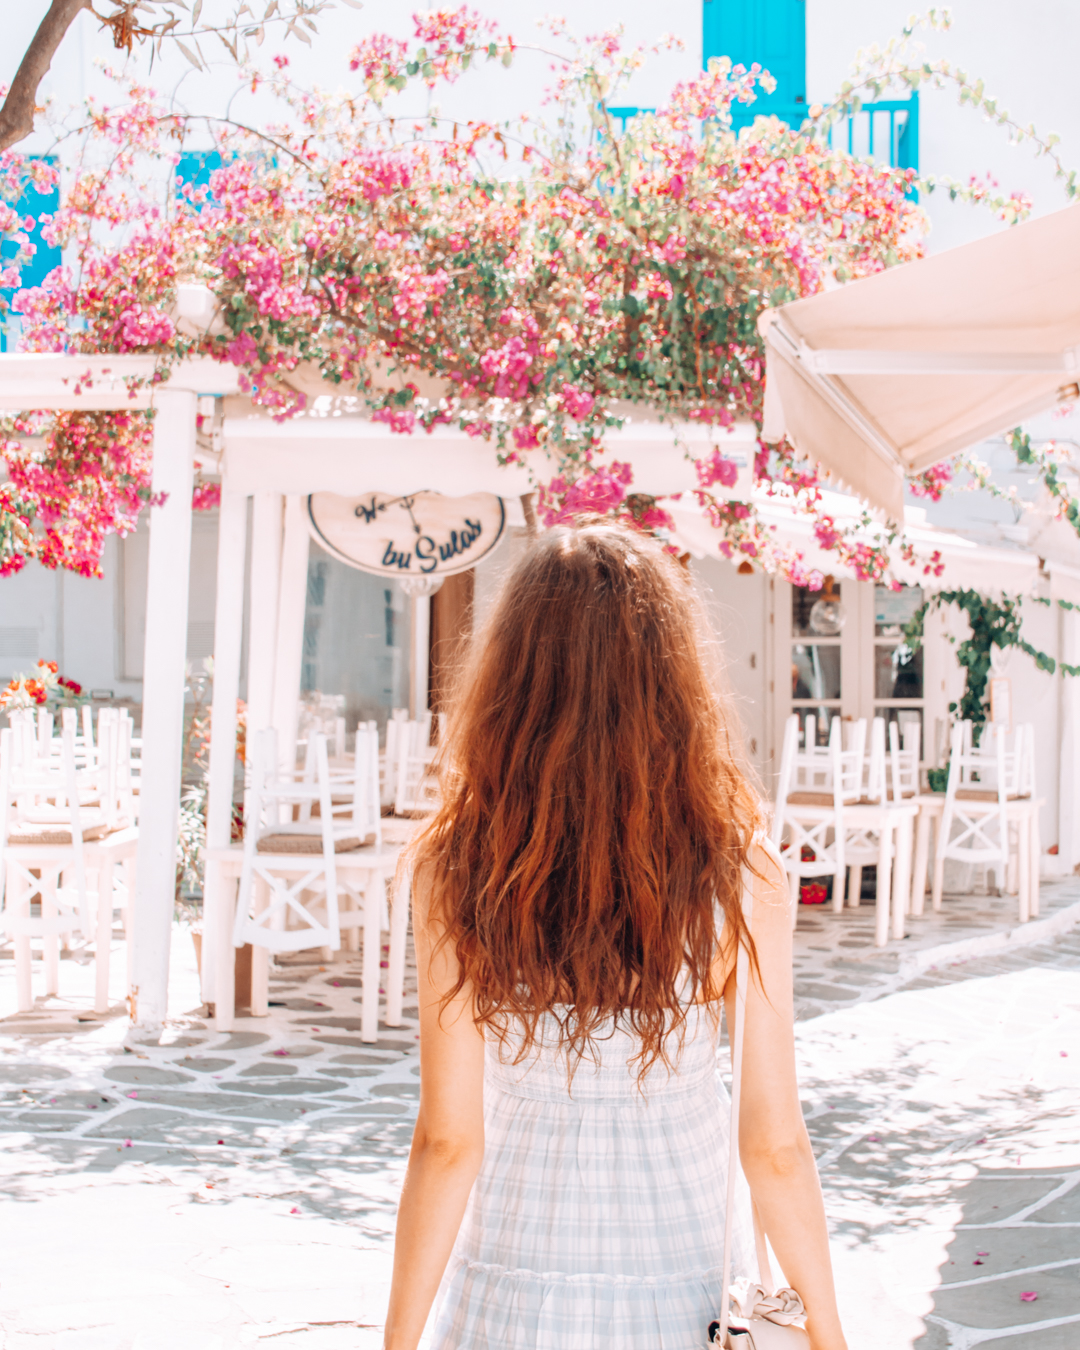 Girl in front of a restaurant with flowers